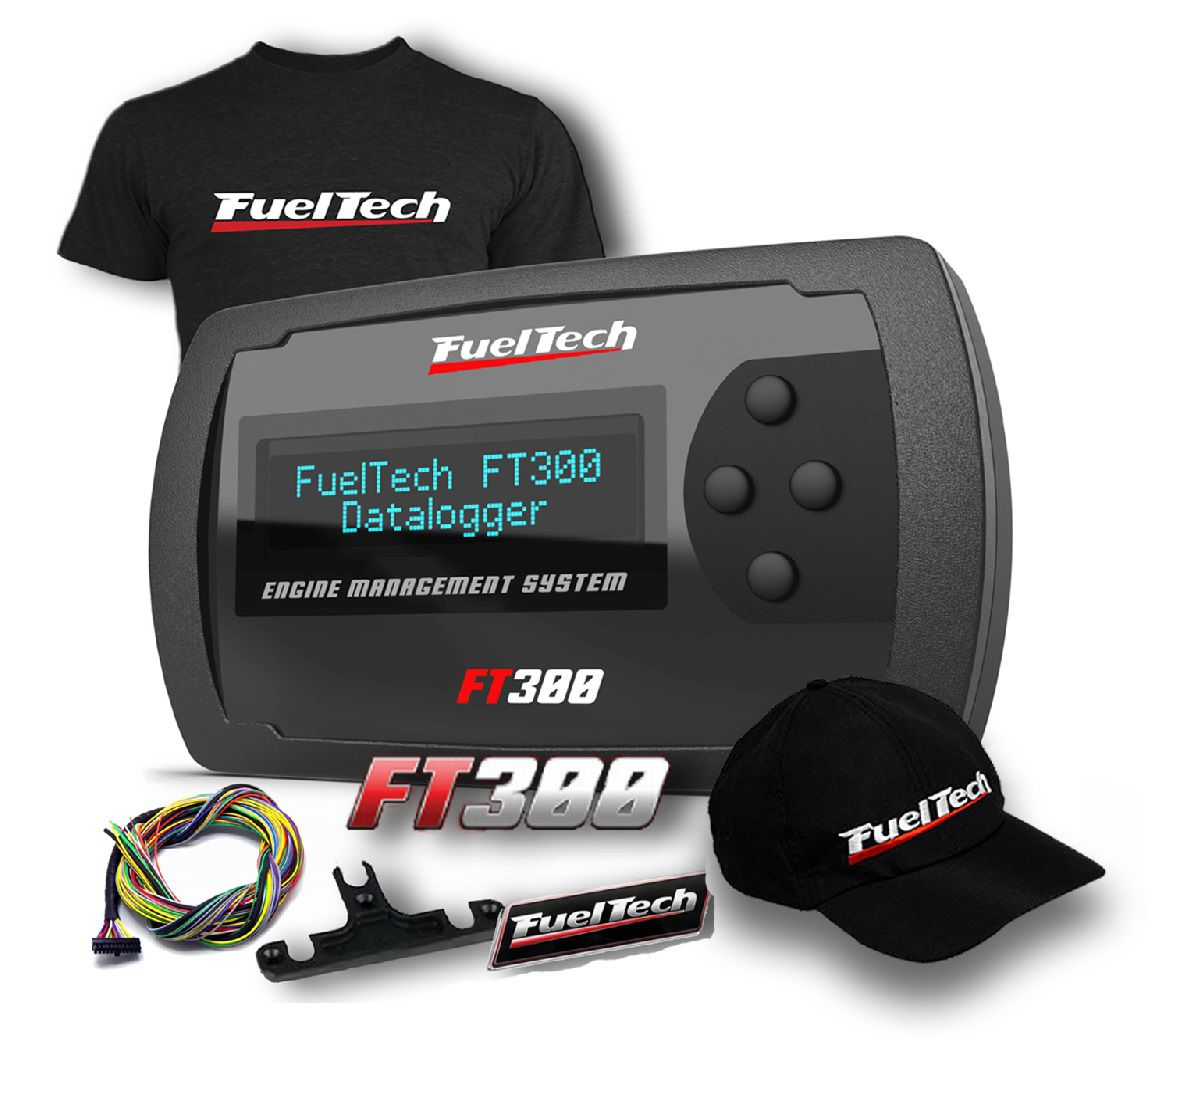 Fueltech FT 300 + camiseta  + bone